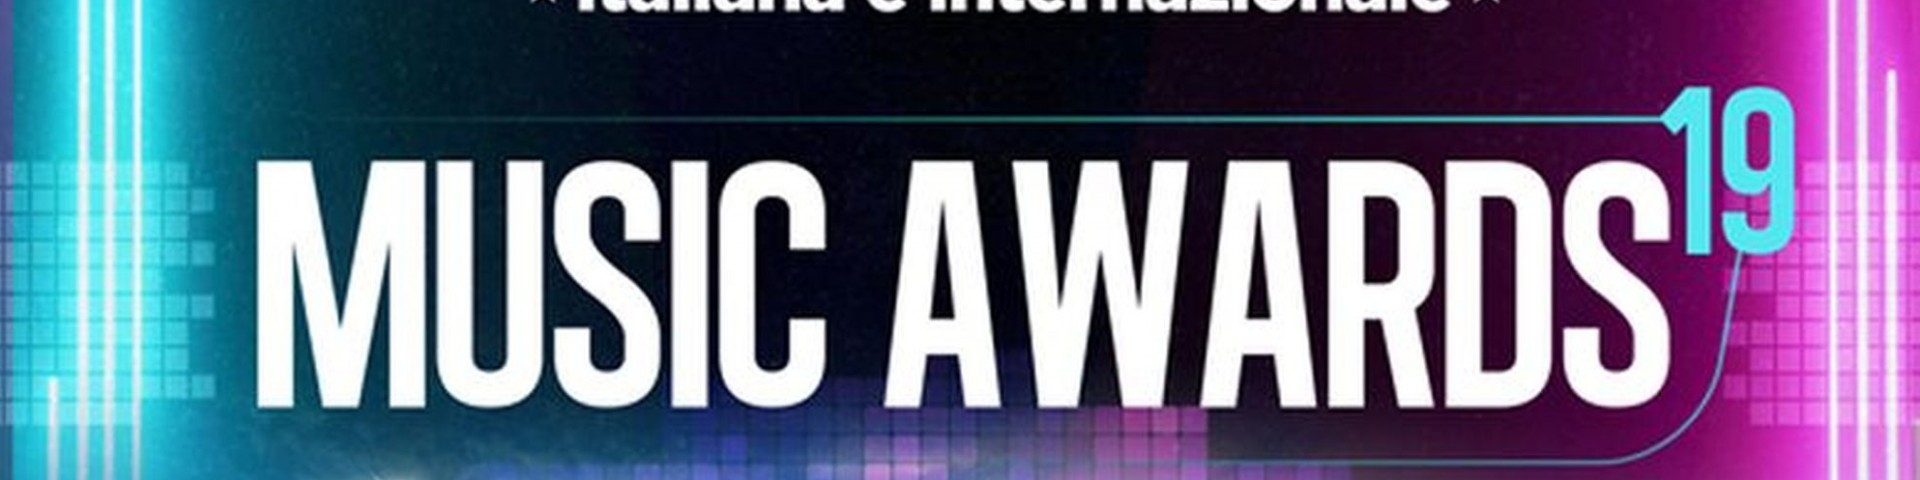 Music Awards 2019 – 4 e 5 giugno